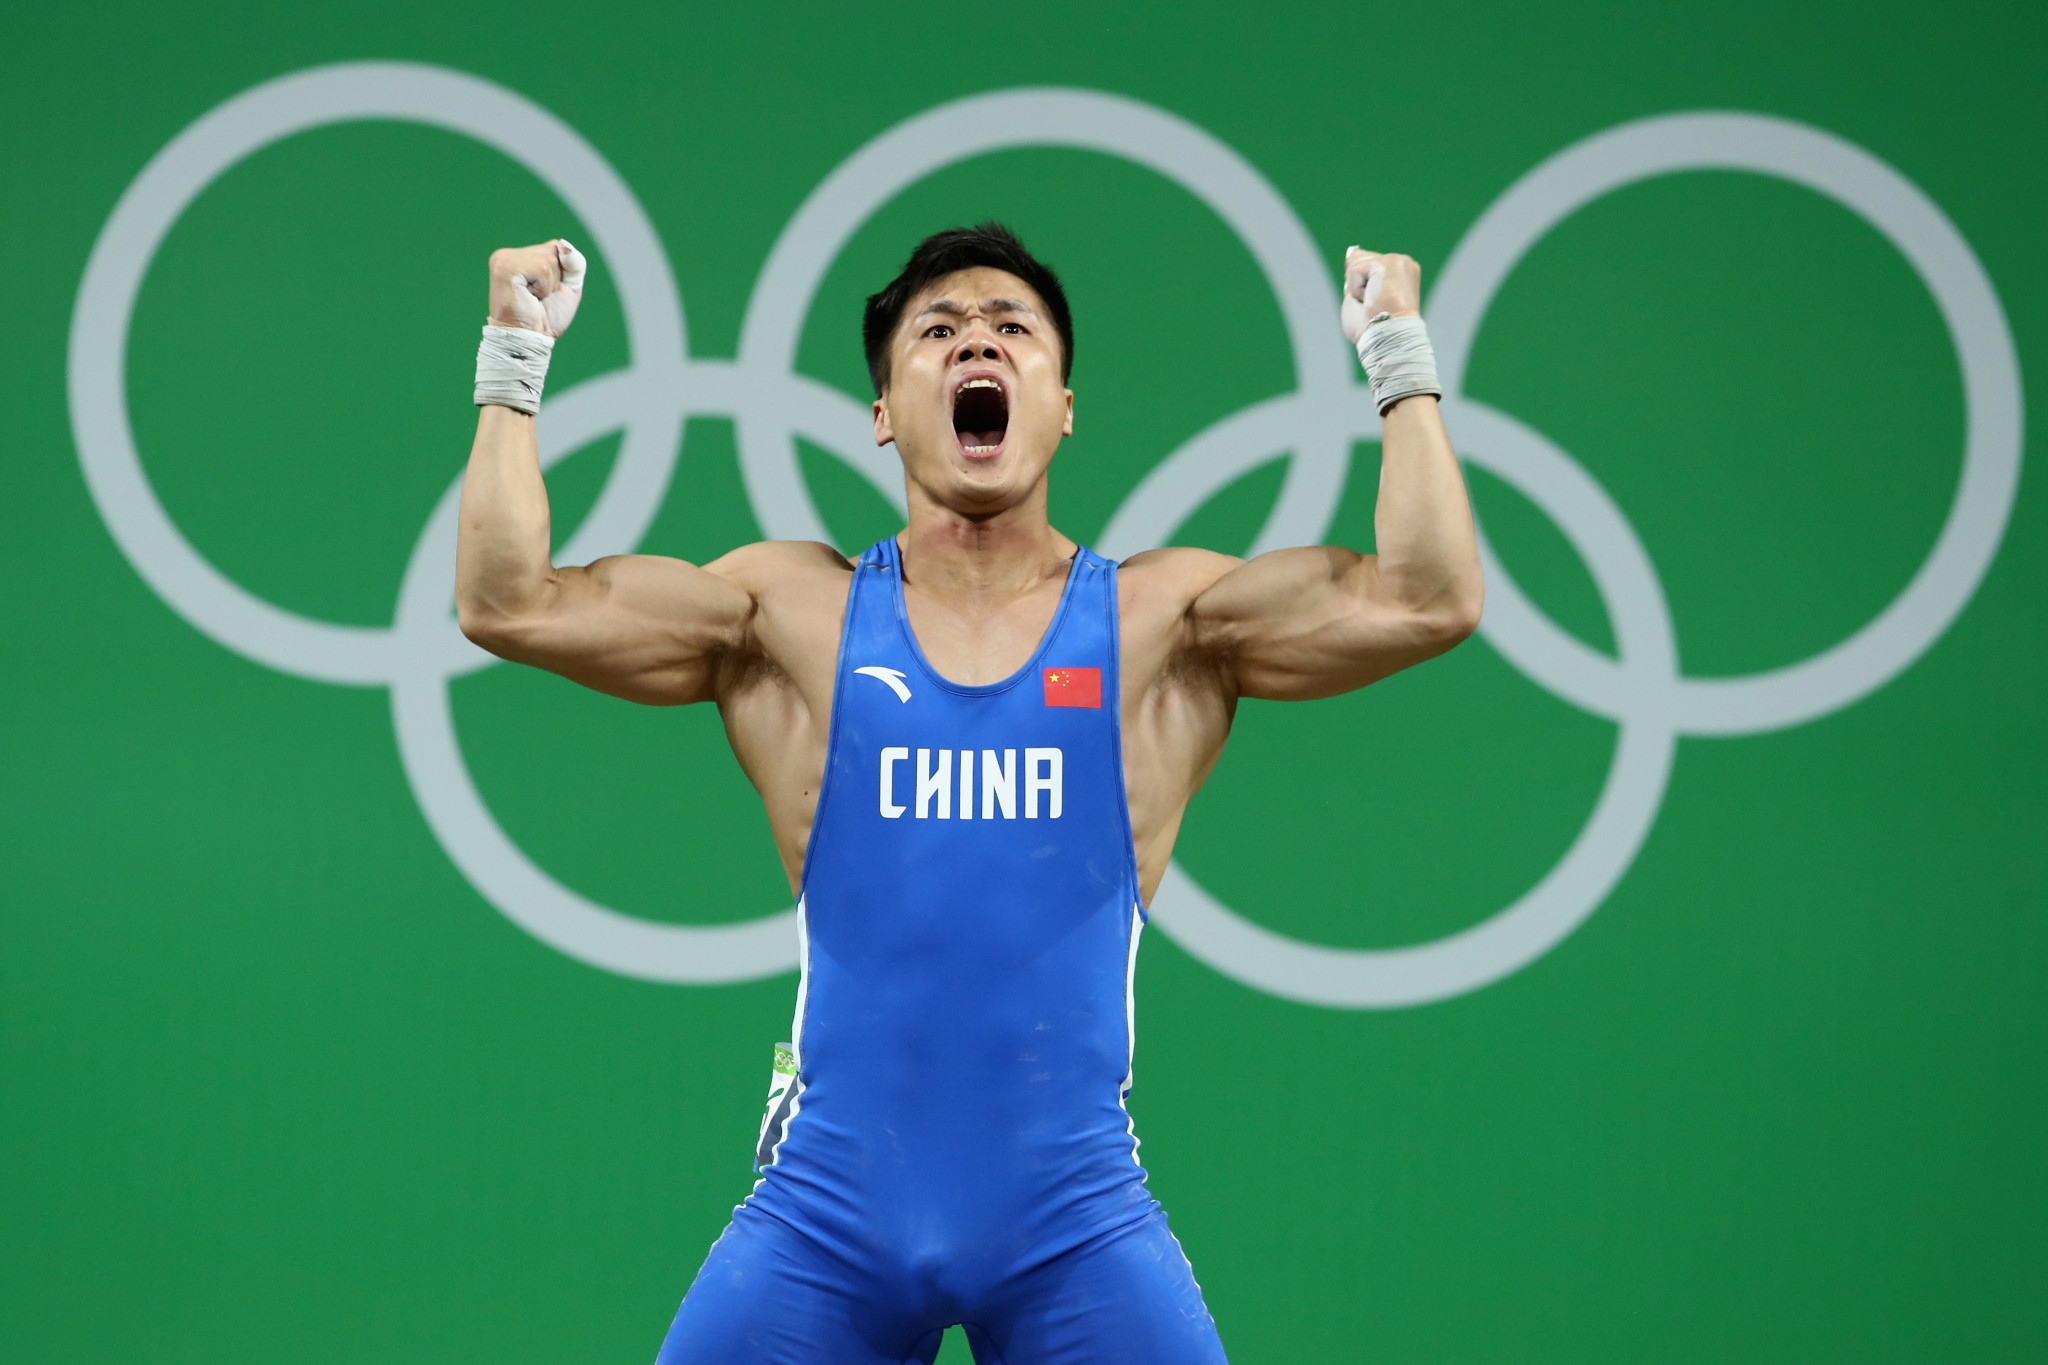 Lju Xiaojun celebrated another gold medal and world record at the Asian Weightlifting Championships ©Getty Images